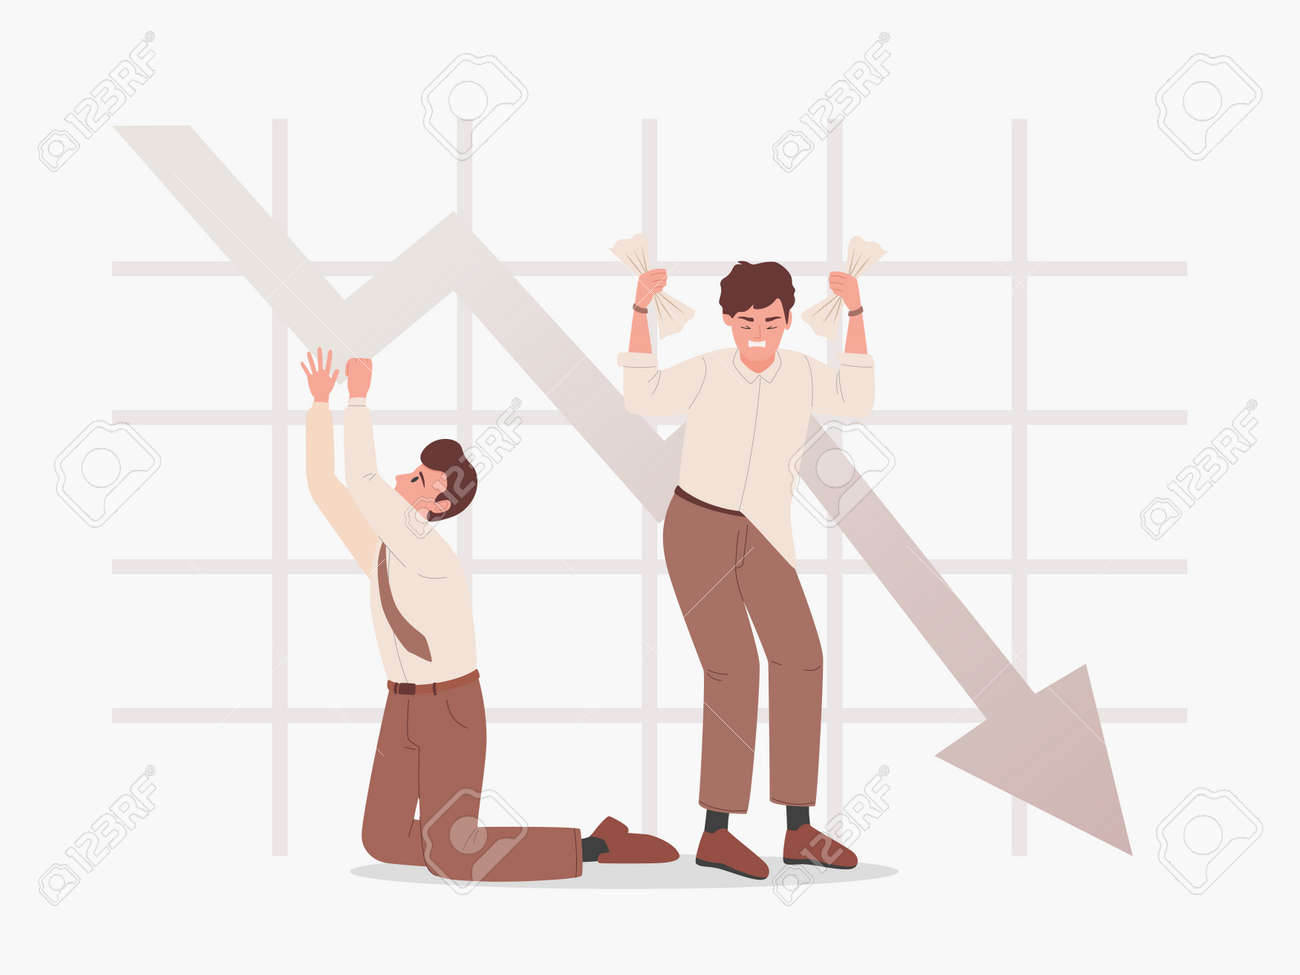 Sad men on the background of falling graph vector flat illustration. Bankruptcy, business problems. - 172534798